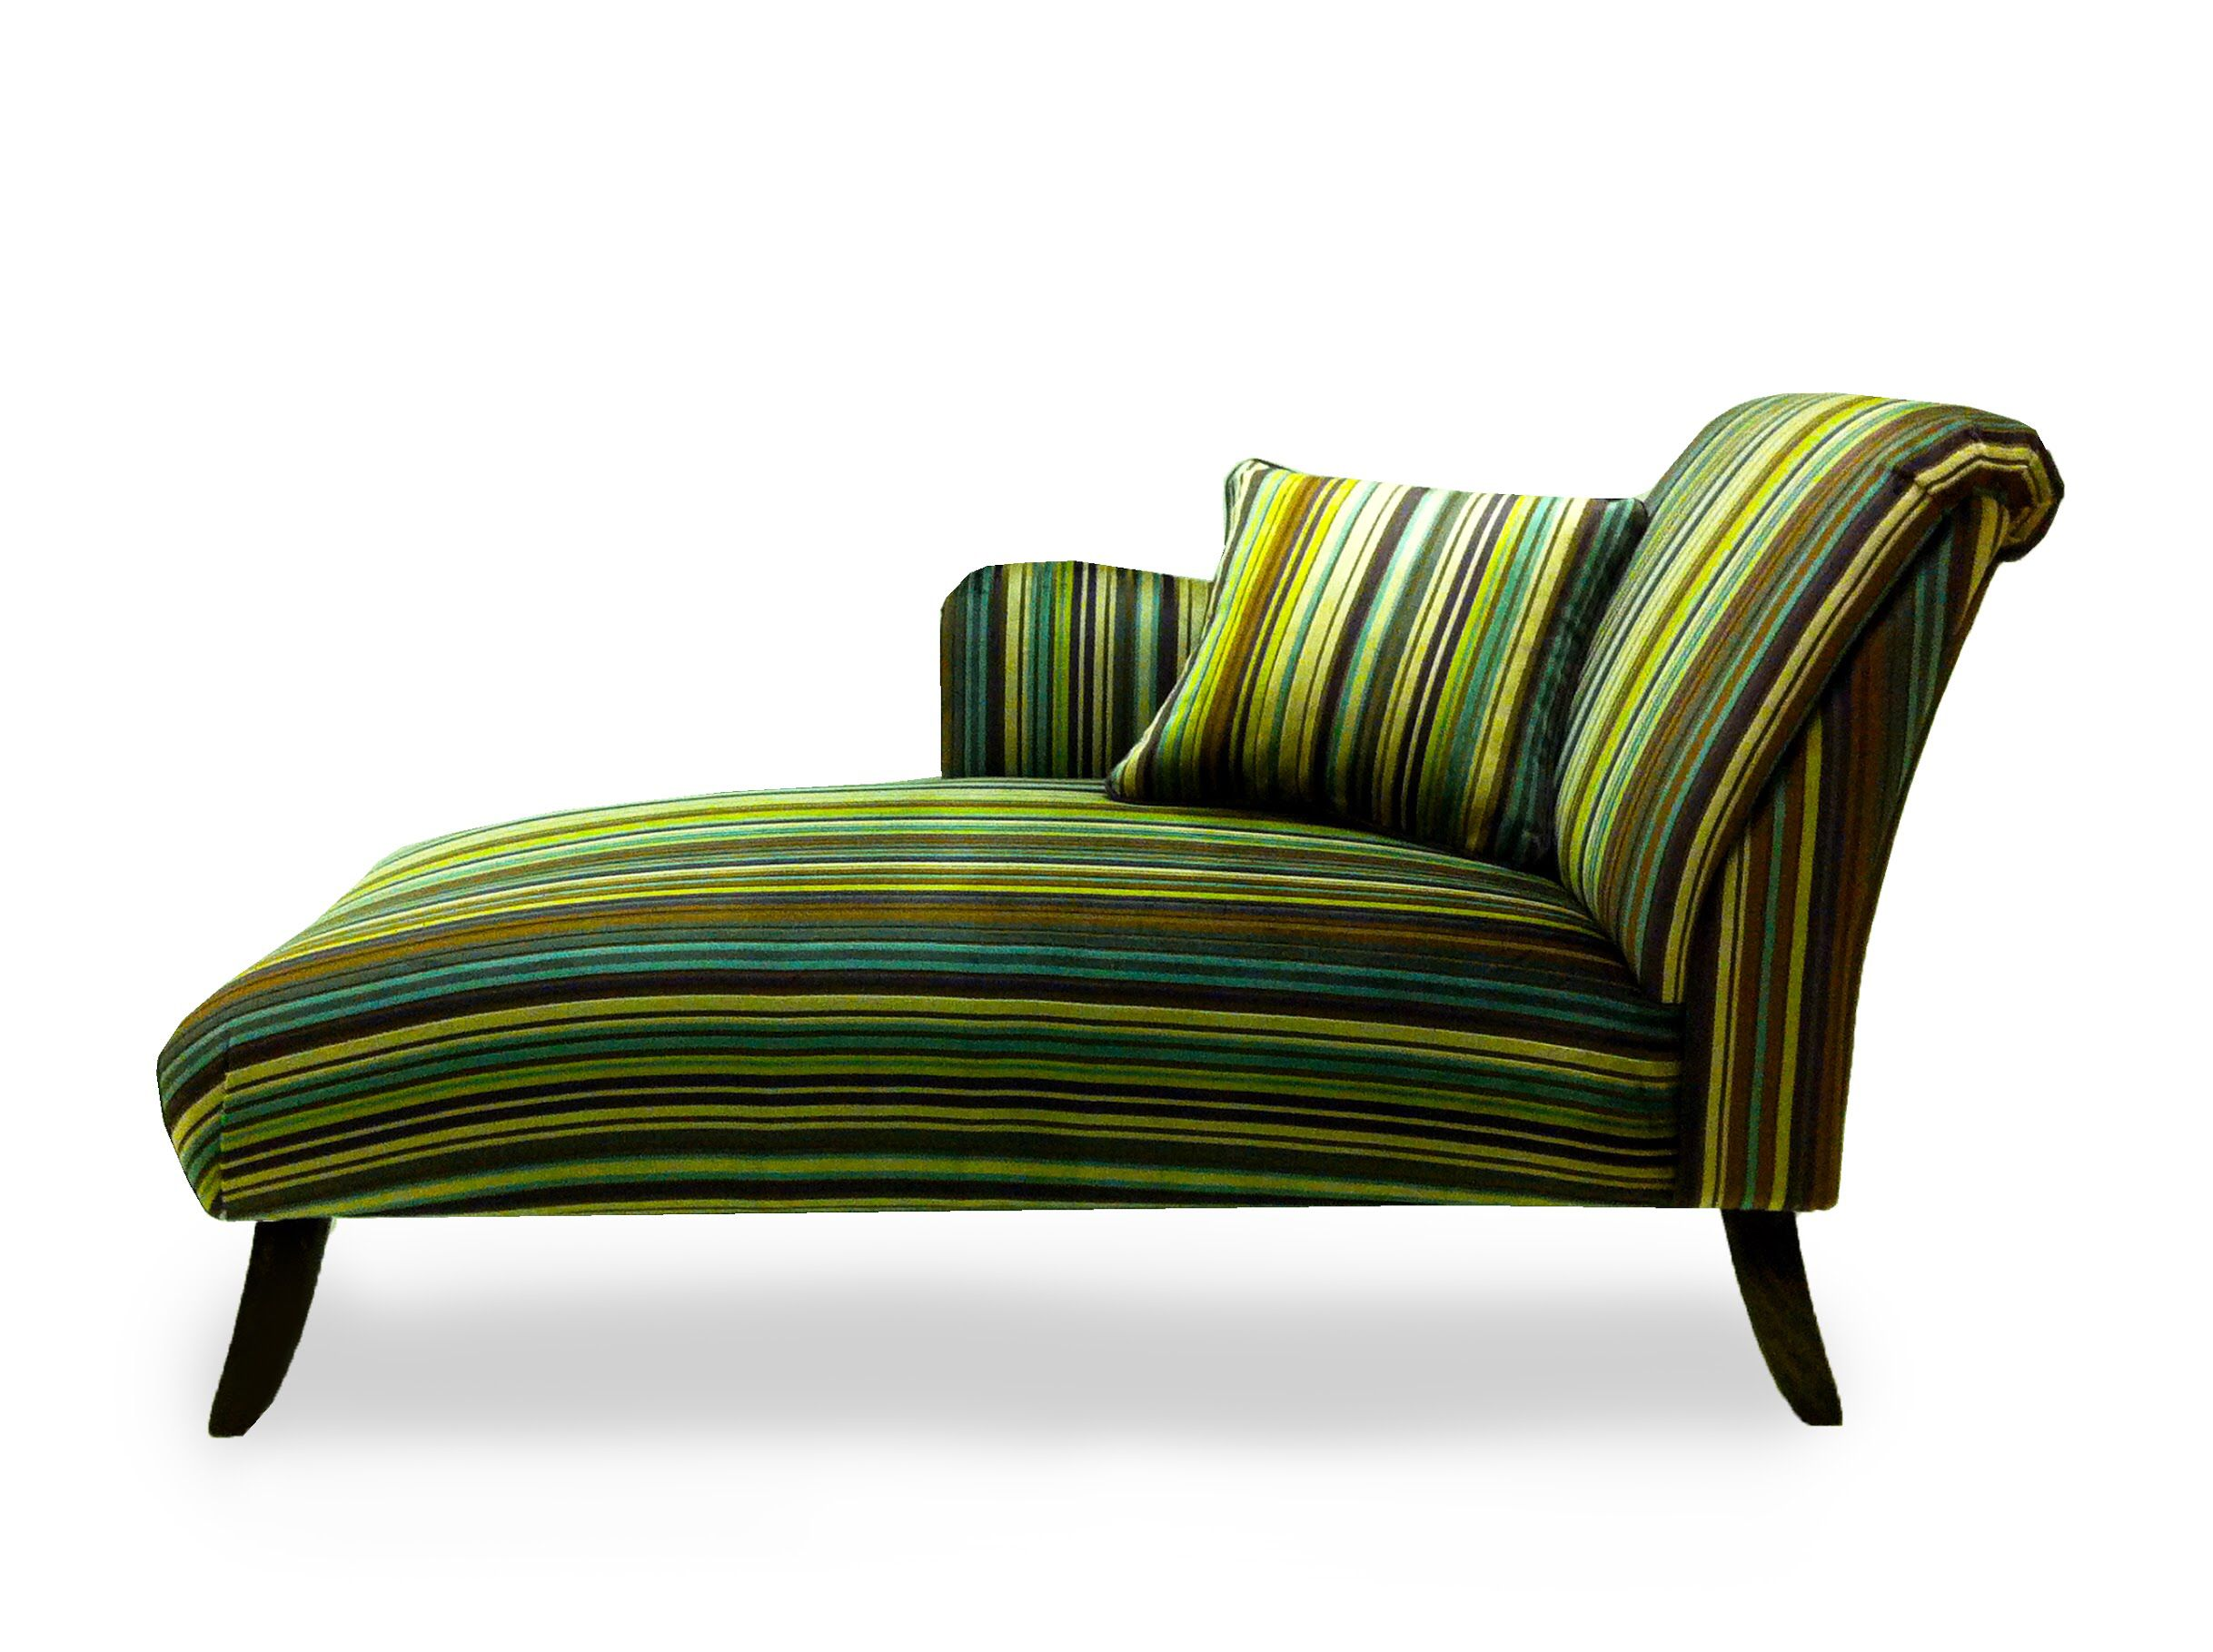 Chaiselongue Modern This Funky Green Velvet Fabric Stands Out On Our Bespoke Modern